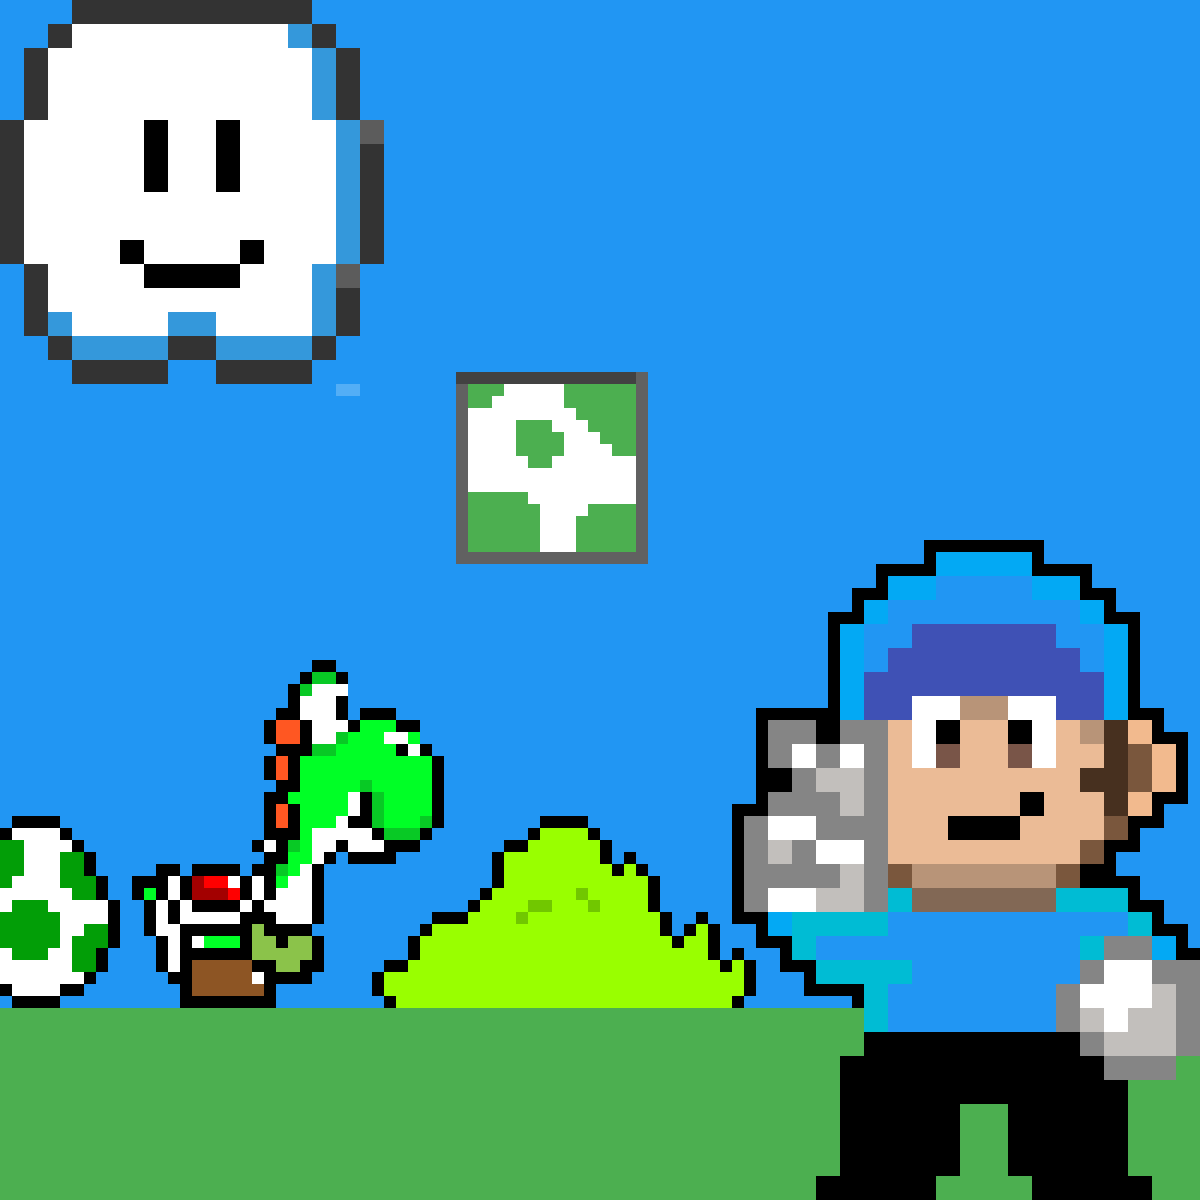 yoshis crafted portada by emicrak-pro99